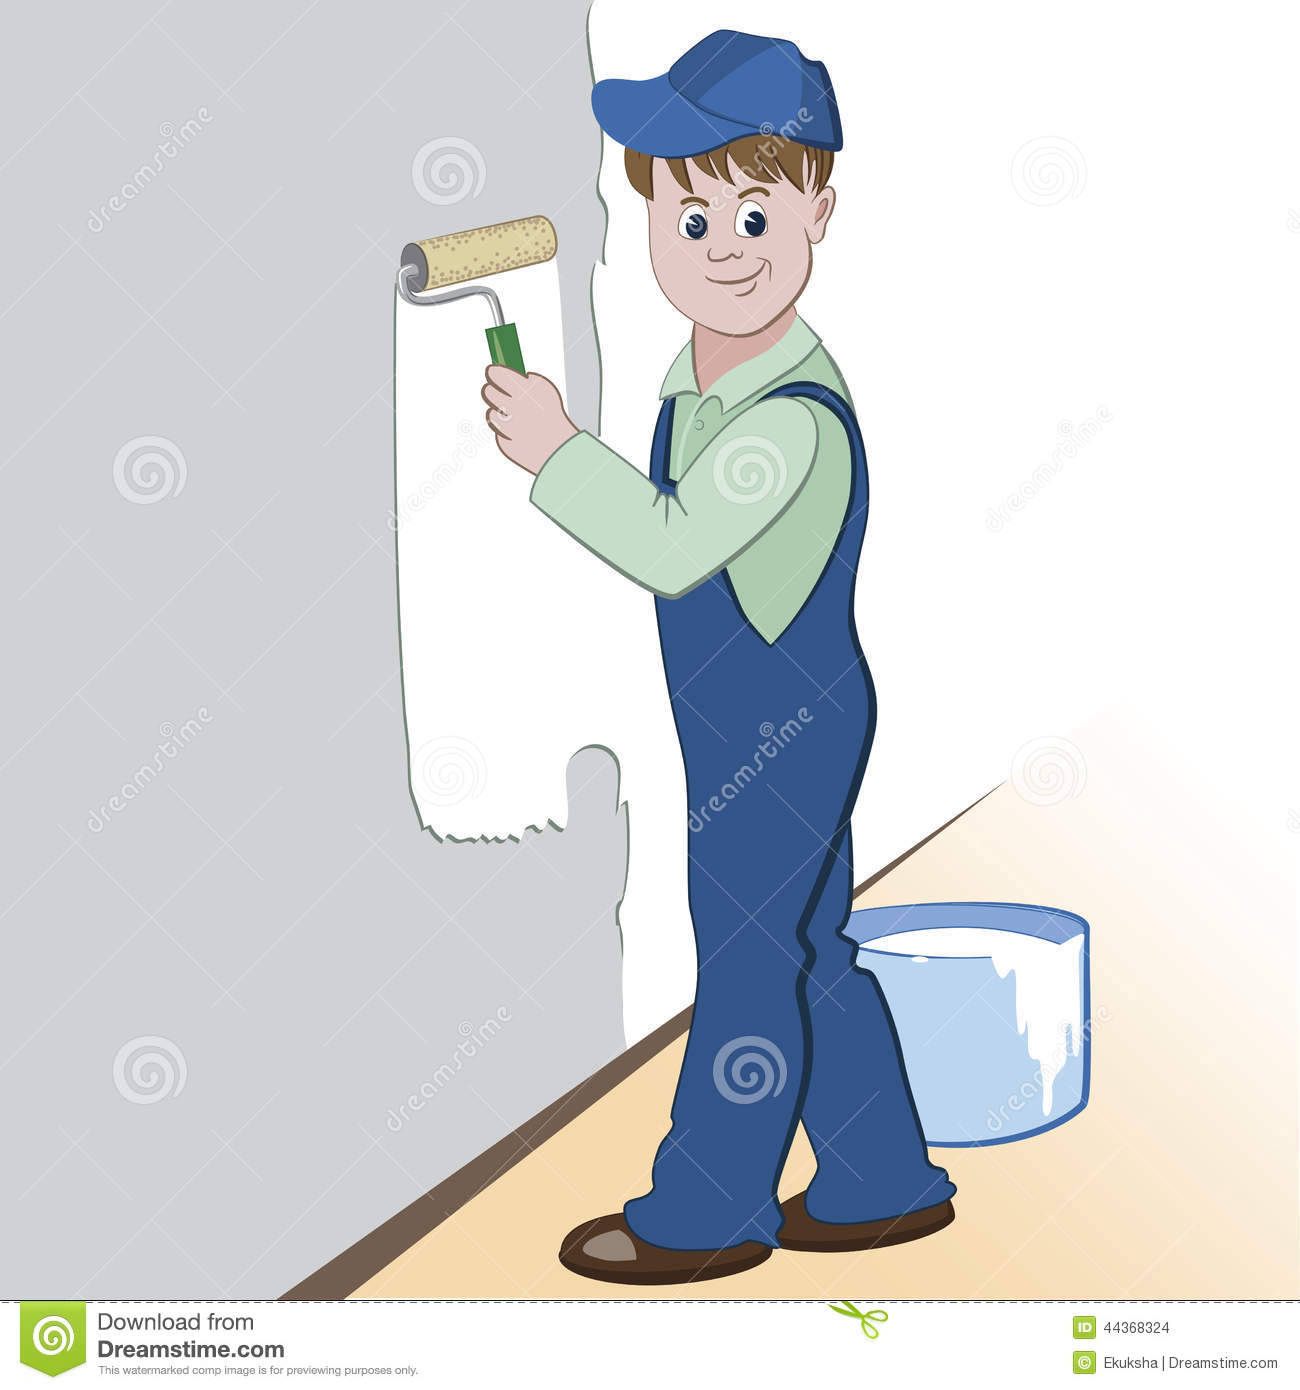 illustration of worker with roller and paint painting the wall design illustration paint painting roller